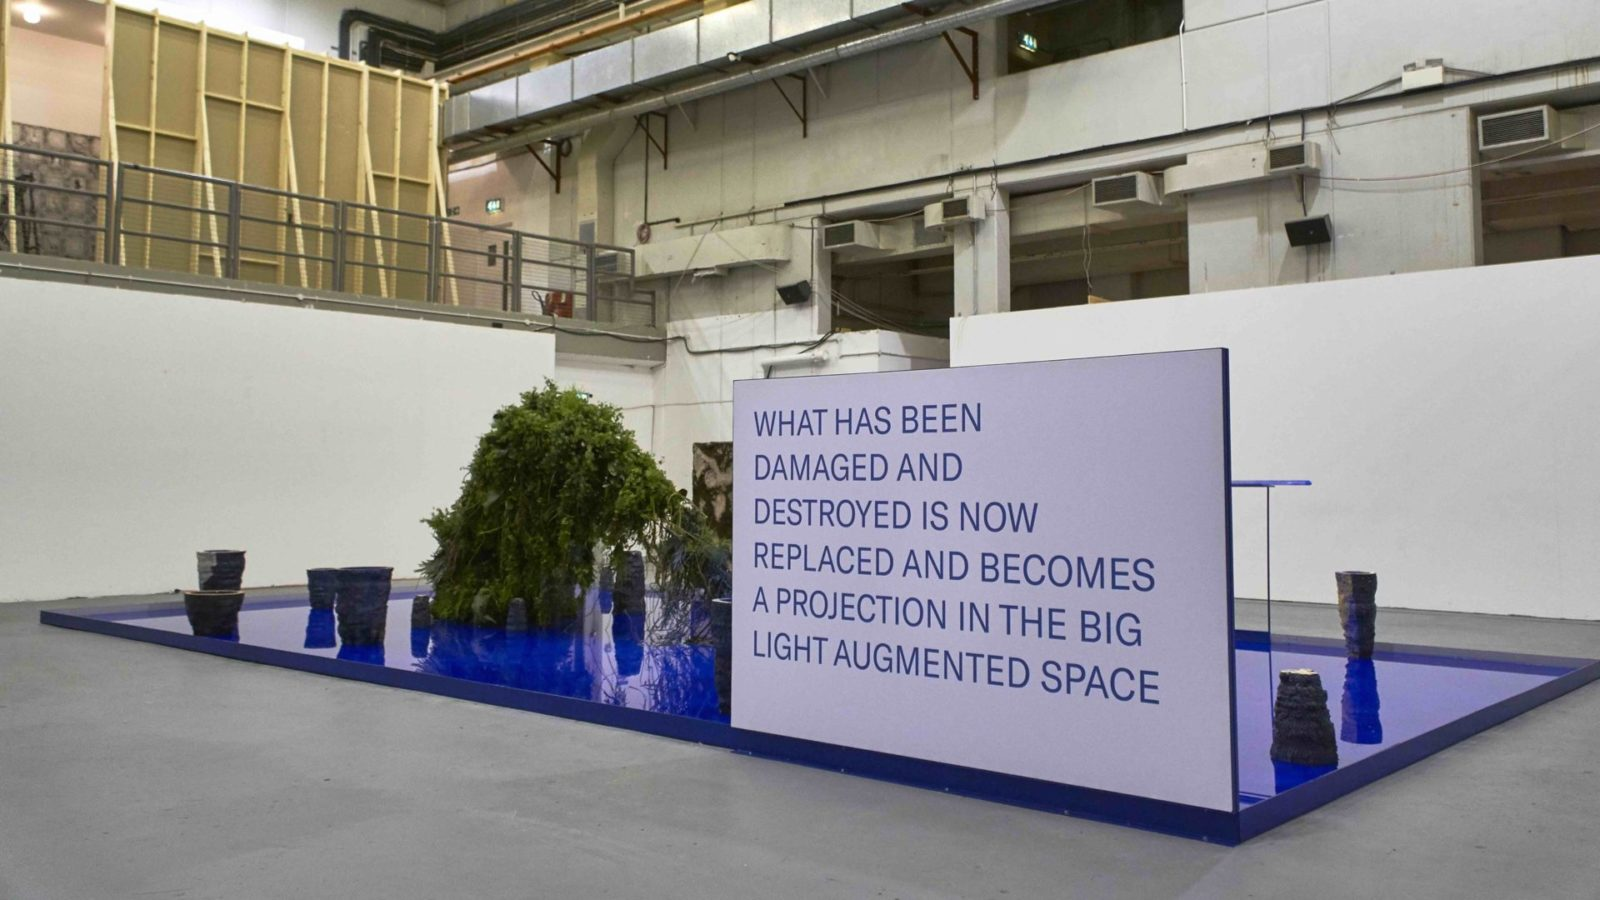 Federico Díaz, BIG LIGHT<br>Space of Augmented Suggestion